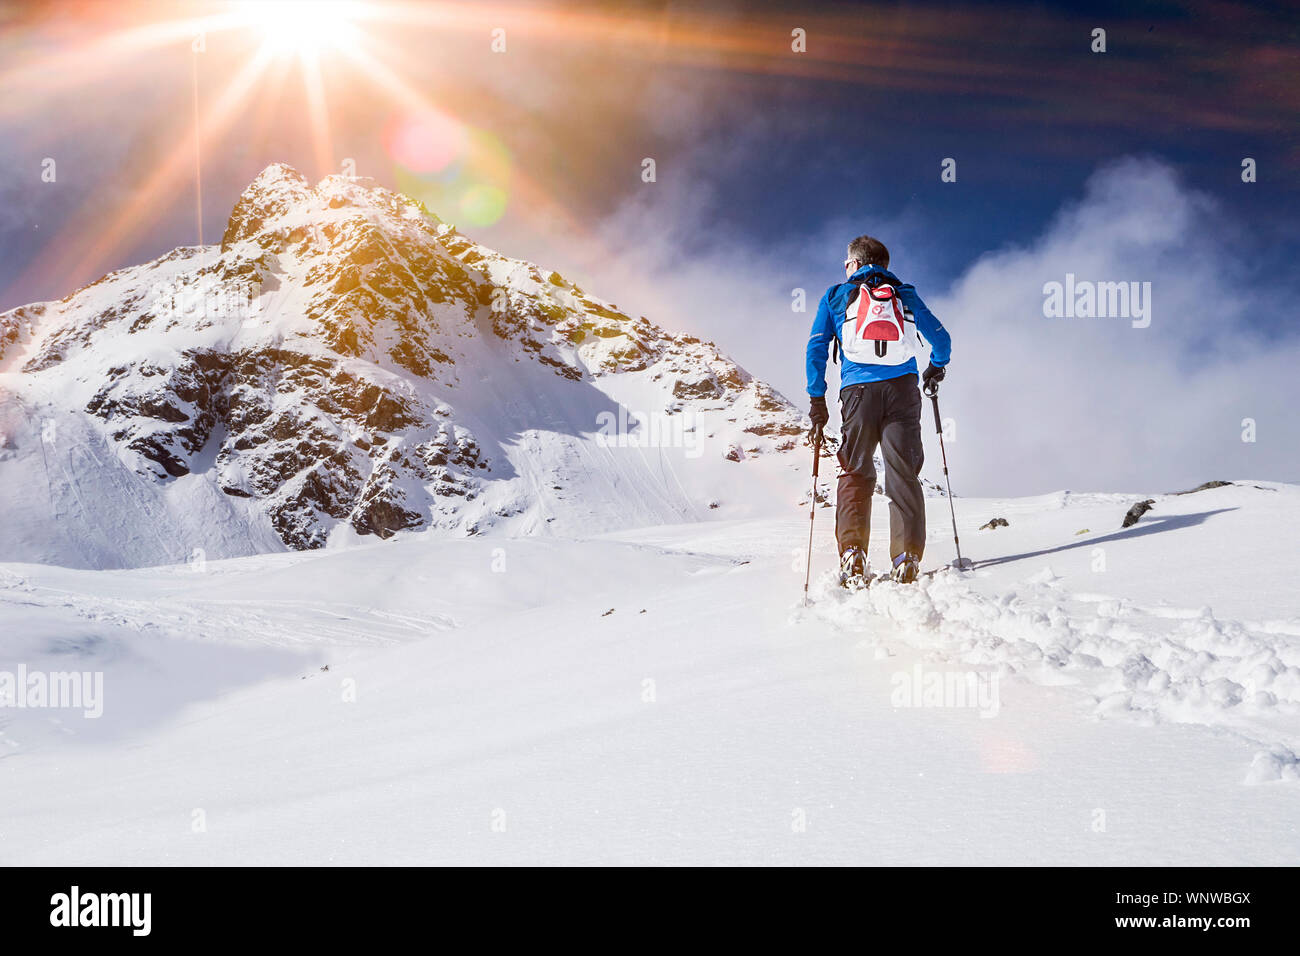 Full Length Of Man Standing On Snow Covered Landscape Stock Photo